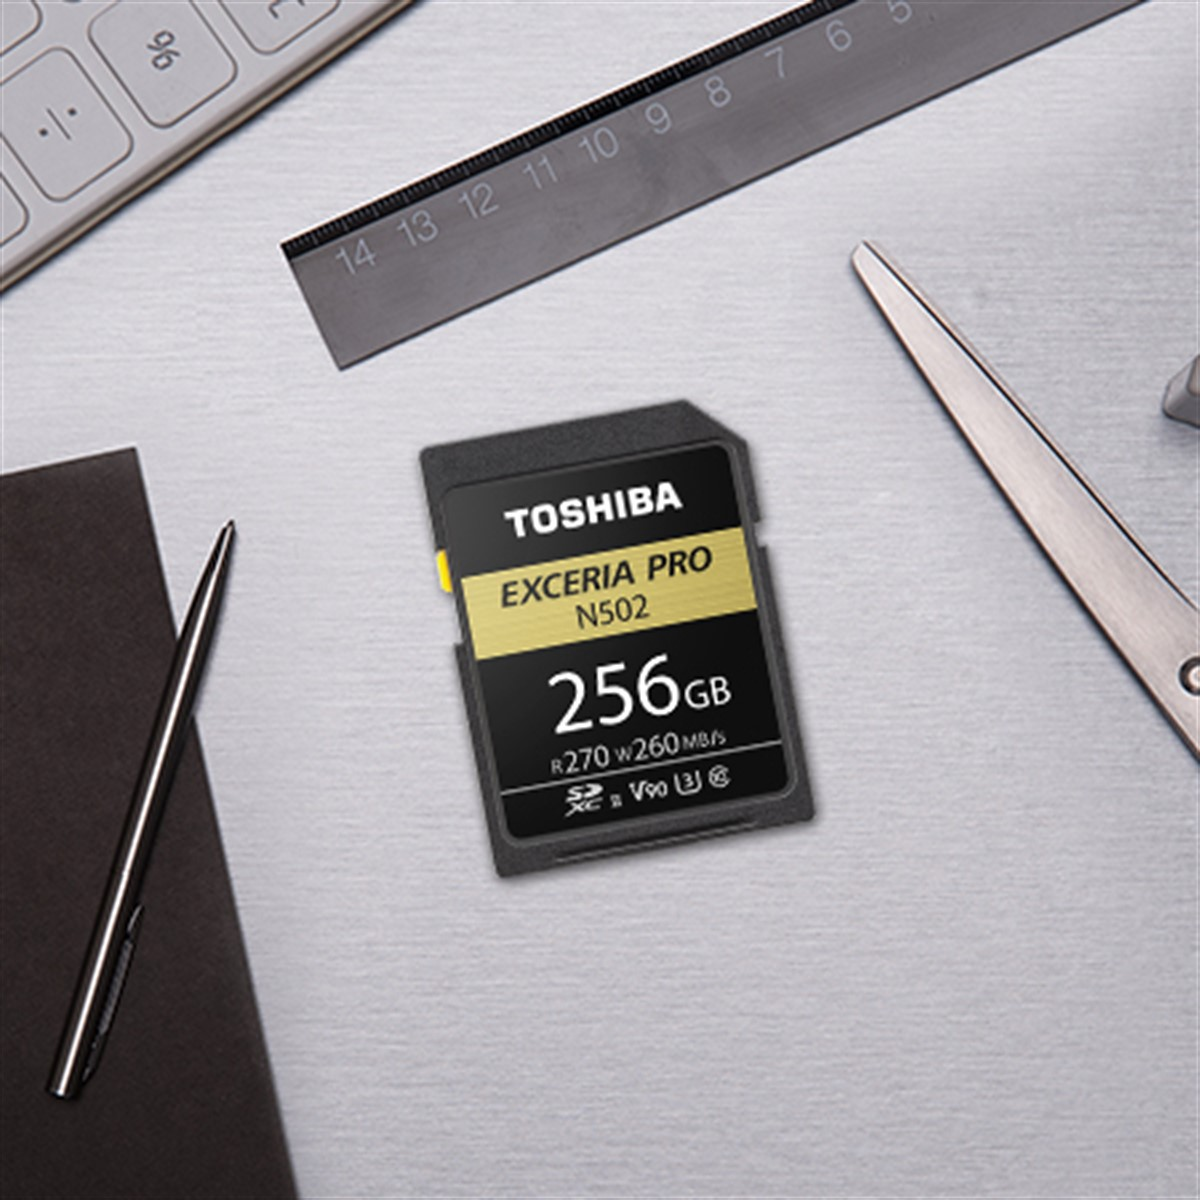 Toshiba Releases New Uhs Ii Exceria Pro Sd Cards In 32gb 64gb Axis Ceria 128gb And 256gb Capacities Digital Photography Review